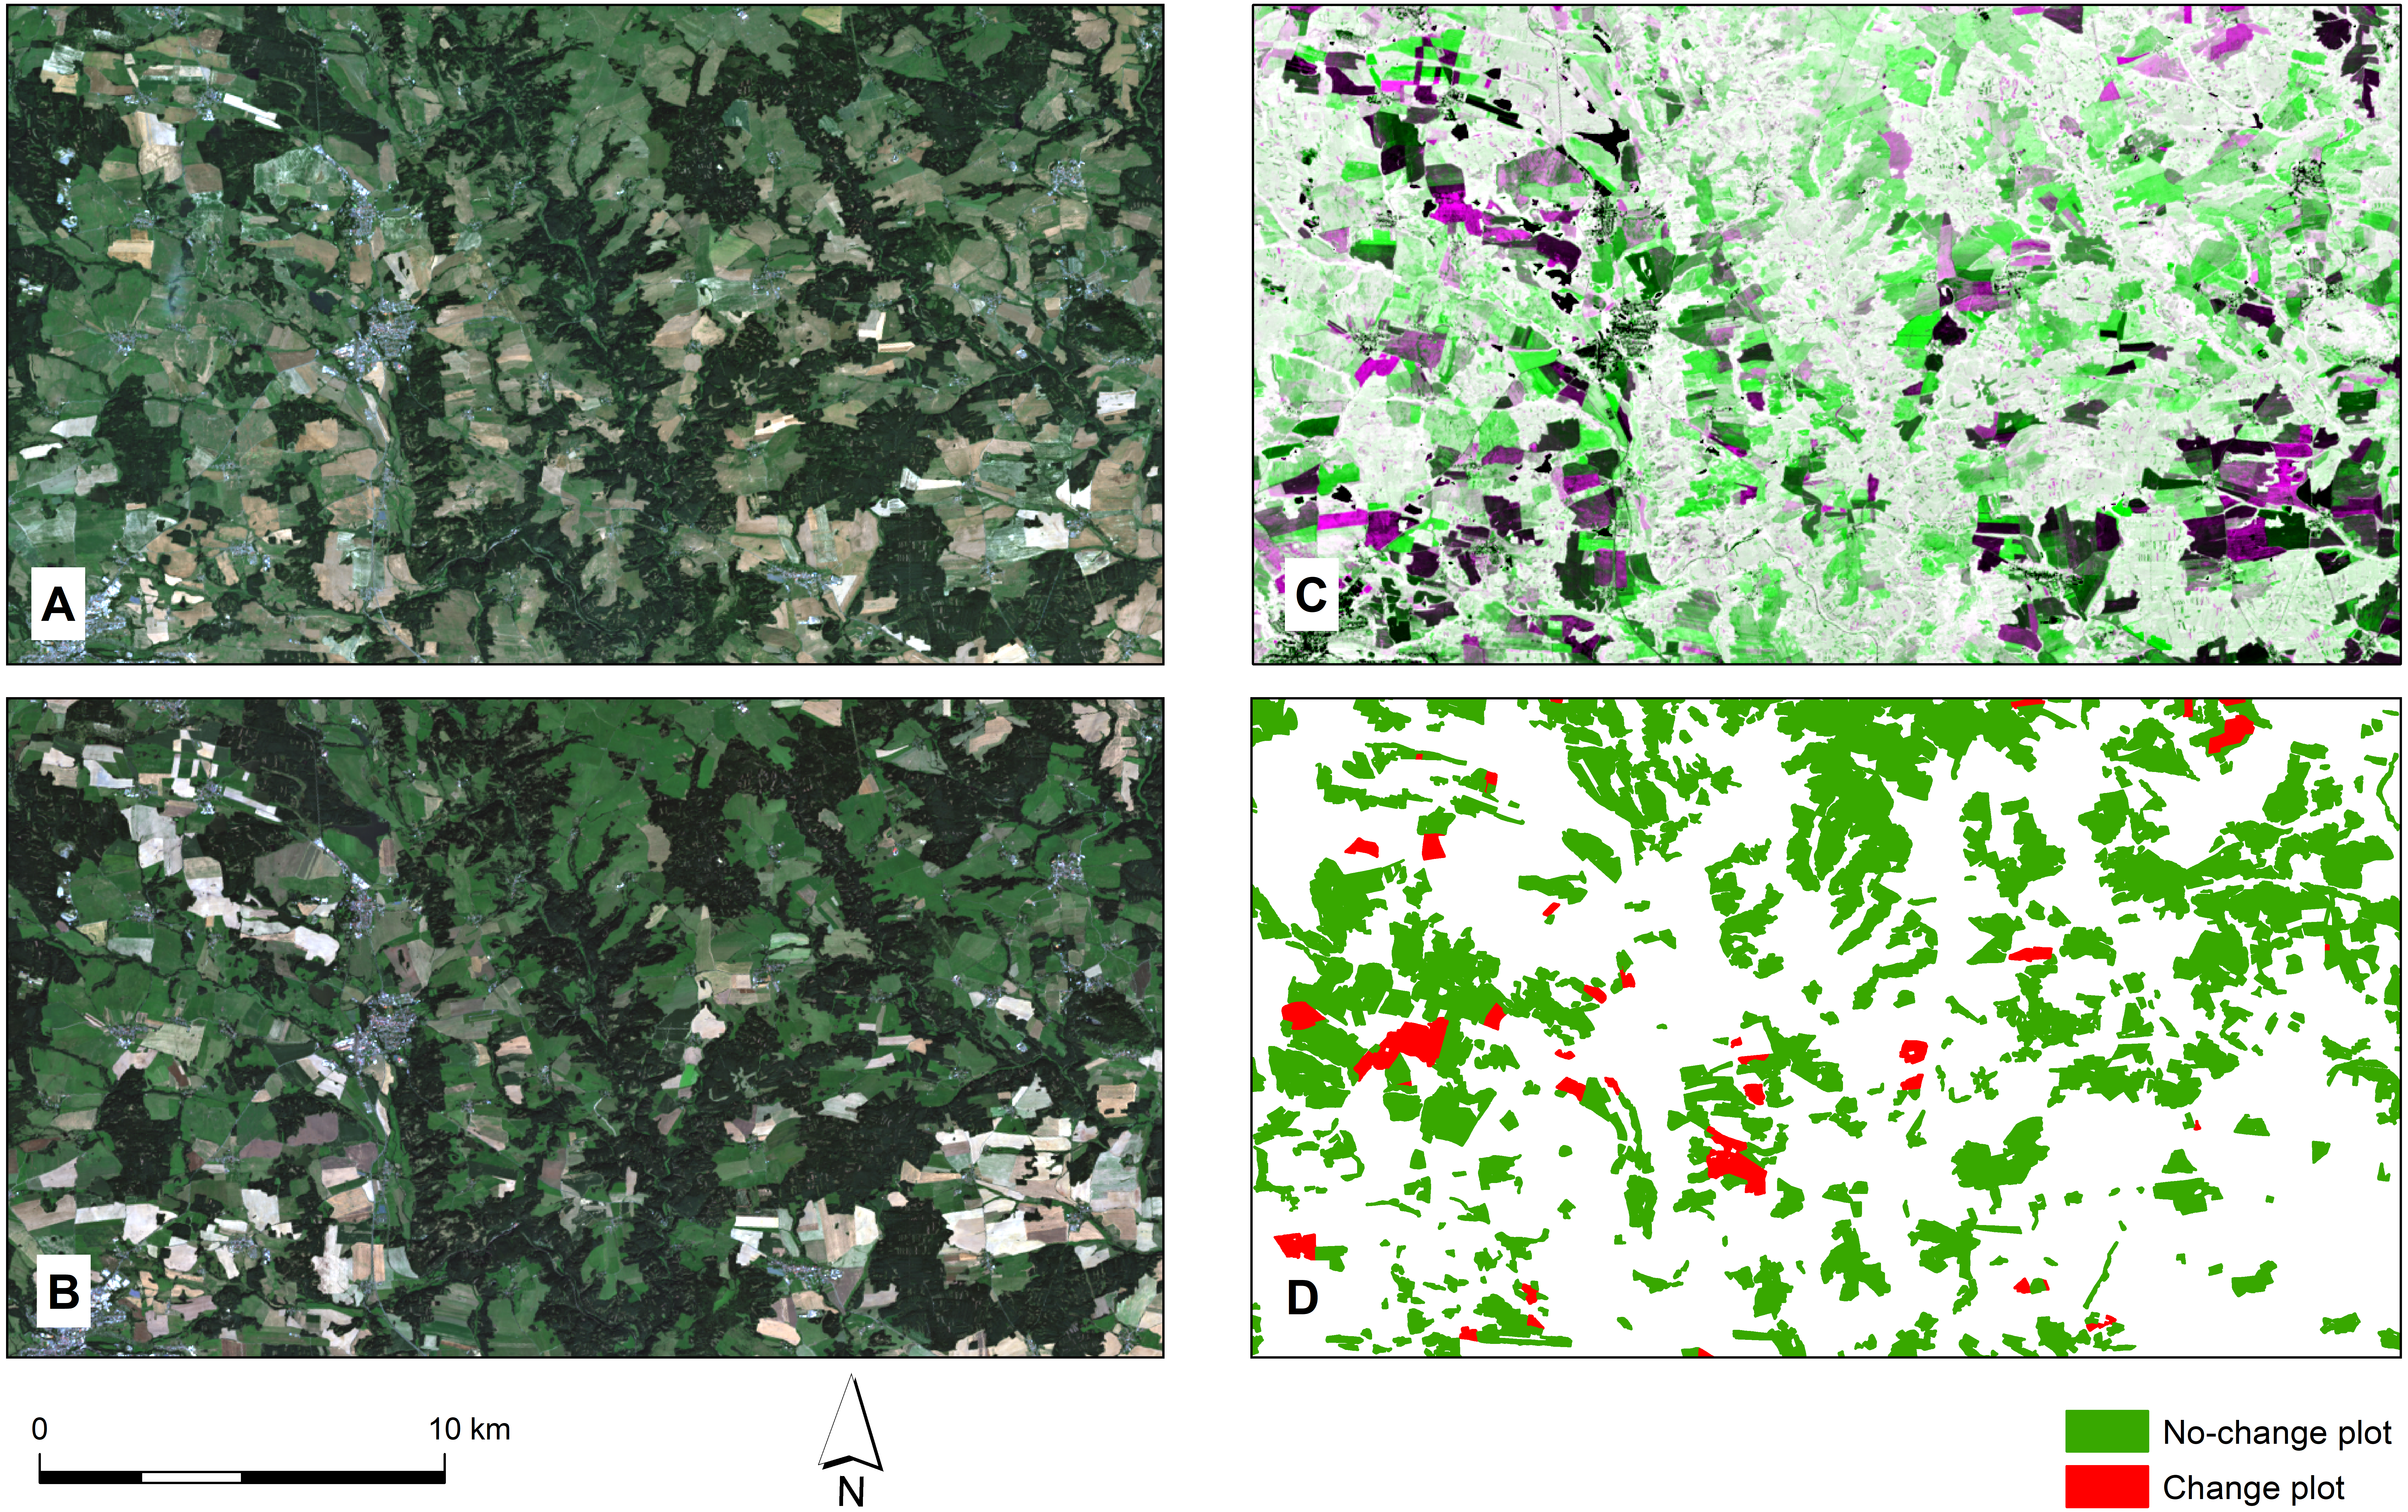 Selecting appropriate variables for detecting grassland to cropland